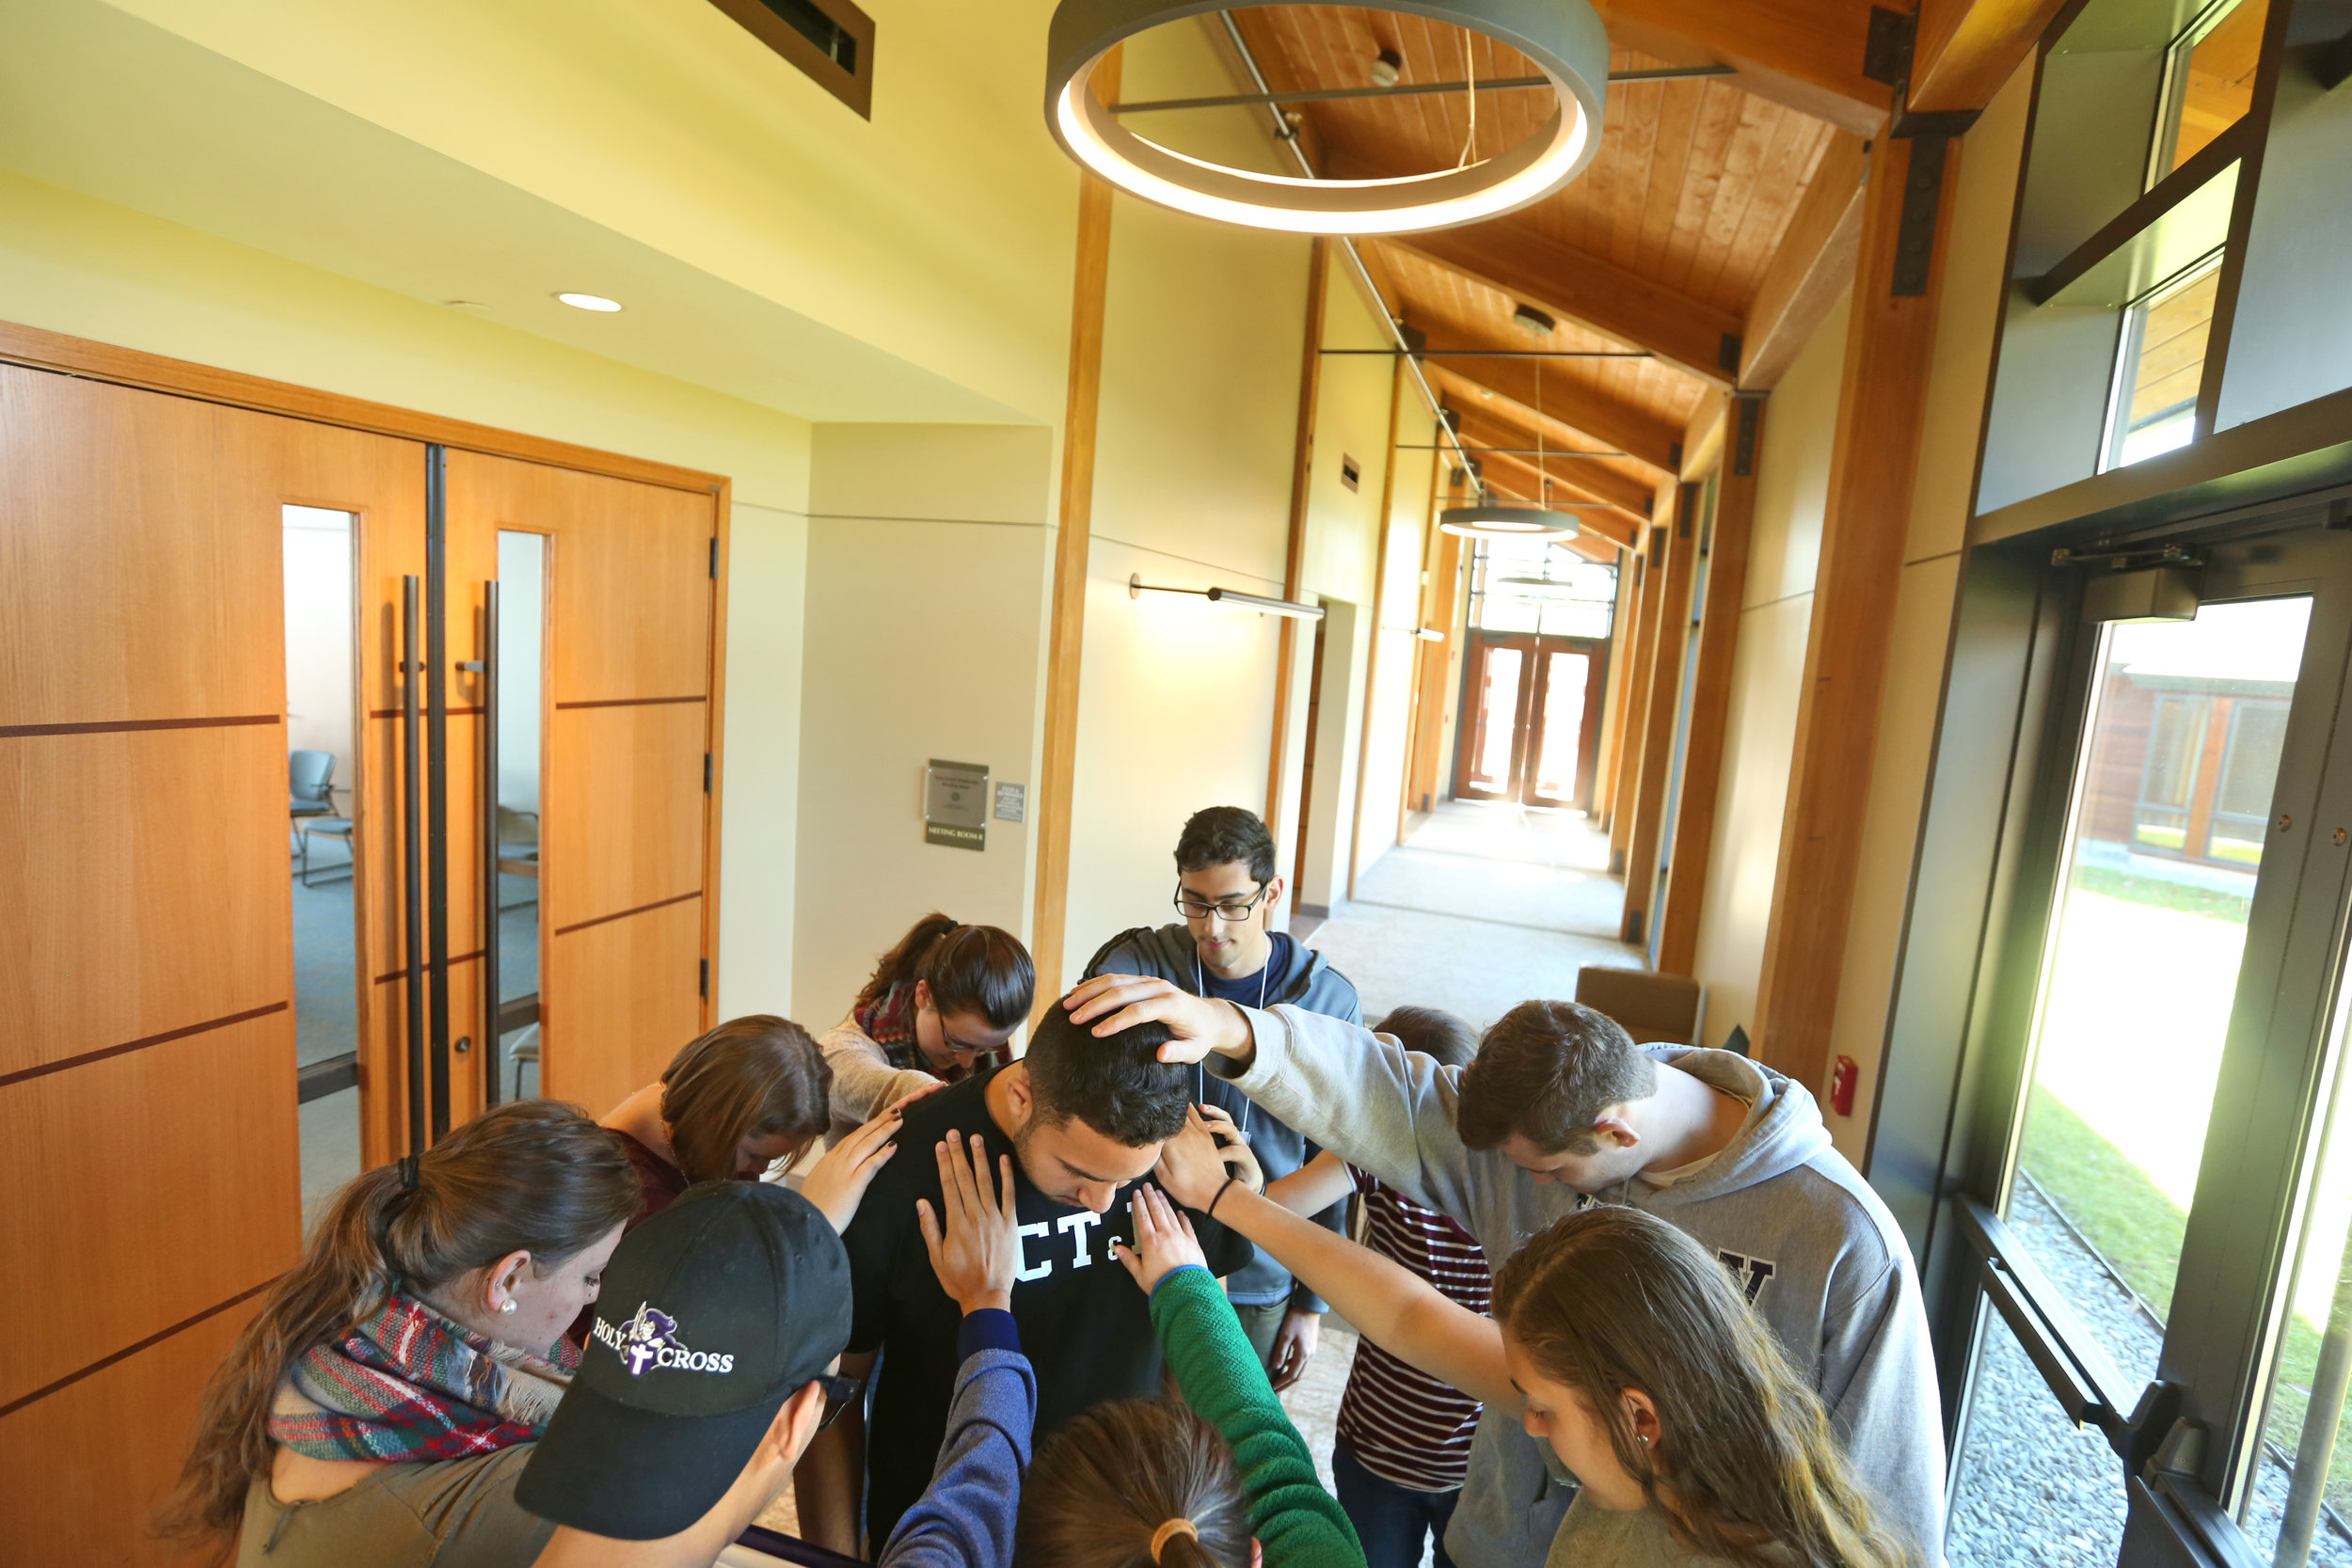 Students pray inside of the Contemplative Center (photo by Tom Retigg for the College of the Holy Cross)